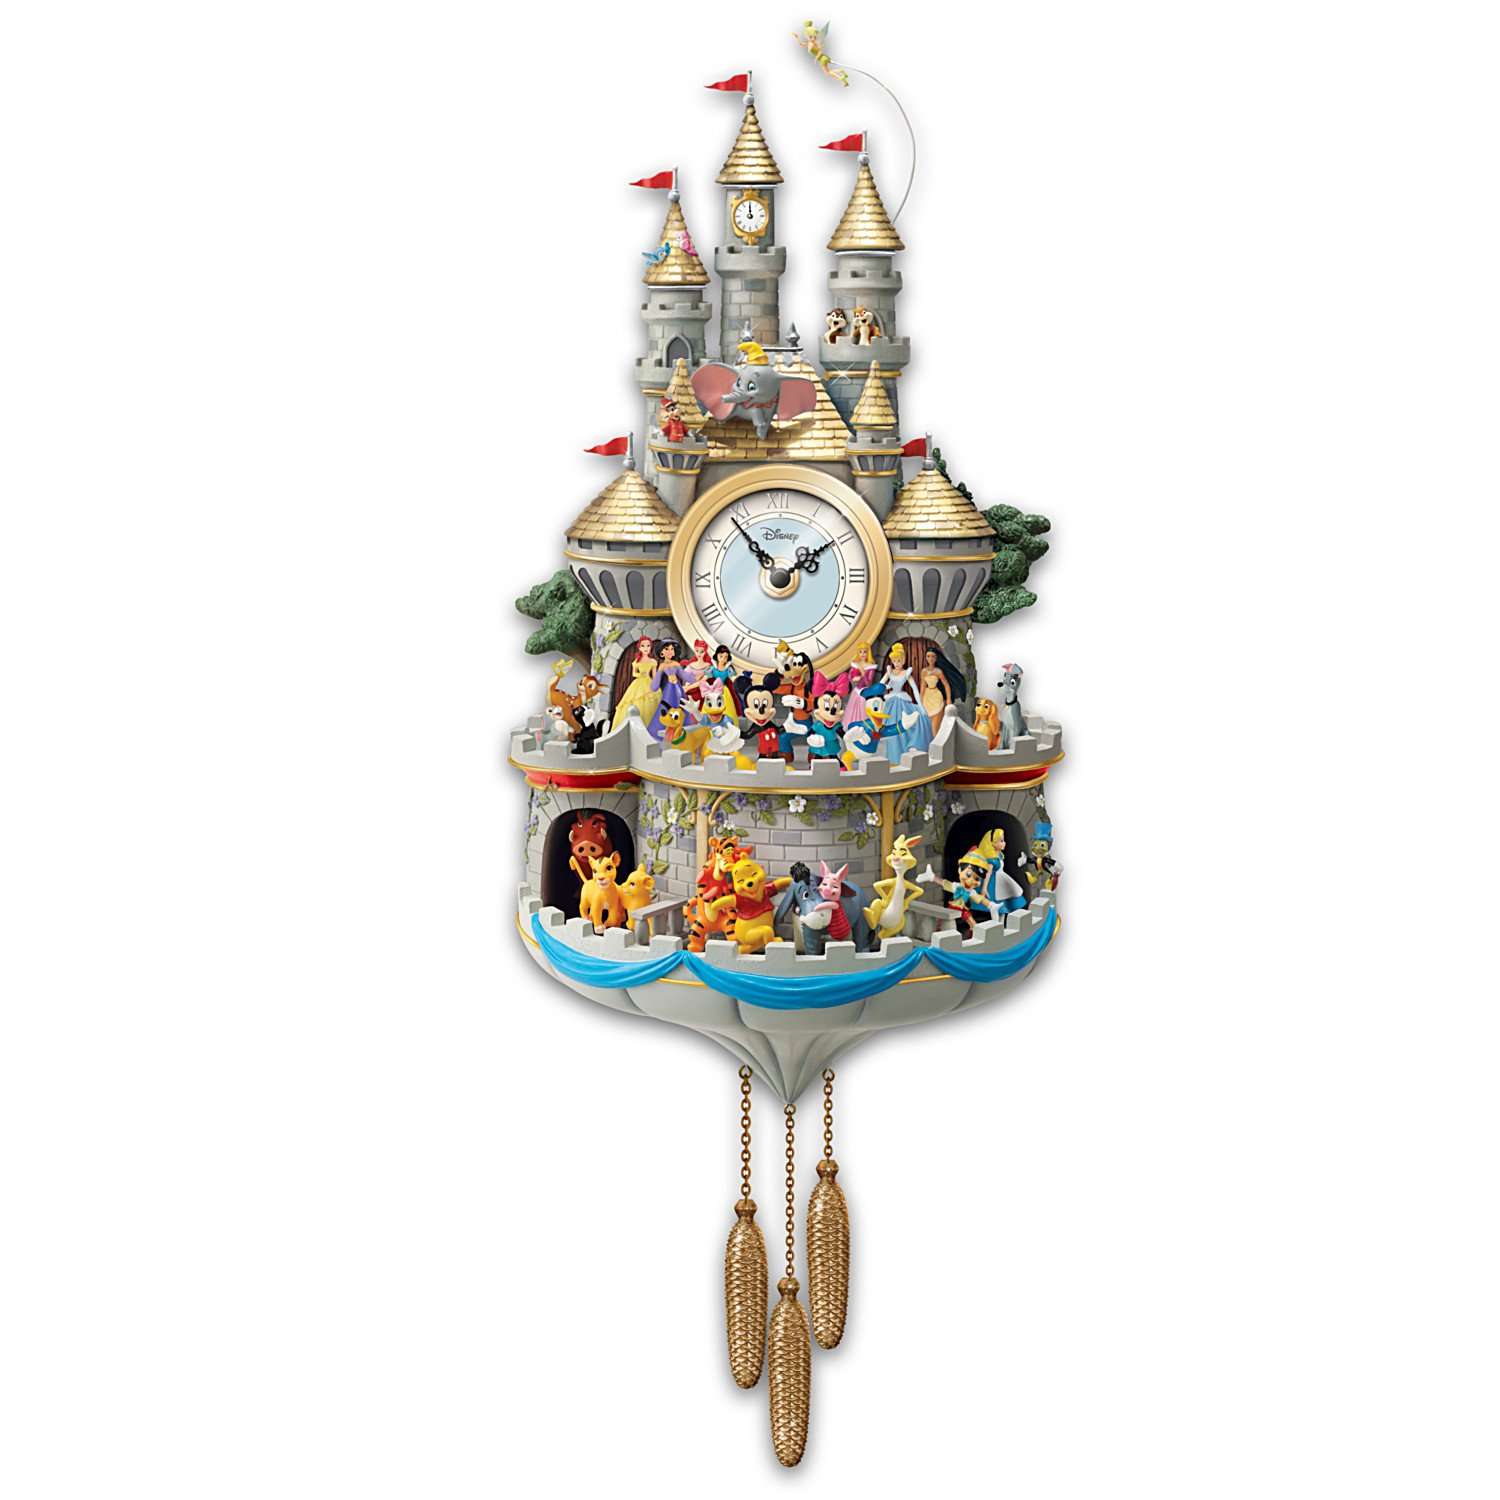 Disney Cuckoo Clock Has 43 Characters Lights Music And Motion by The Bradford Exchange by Bradford Exchange by Bradford Exchange